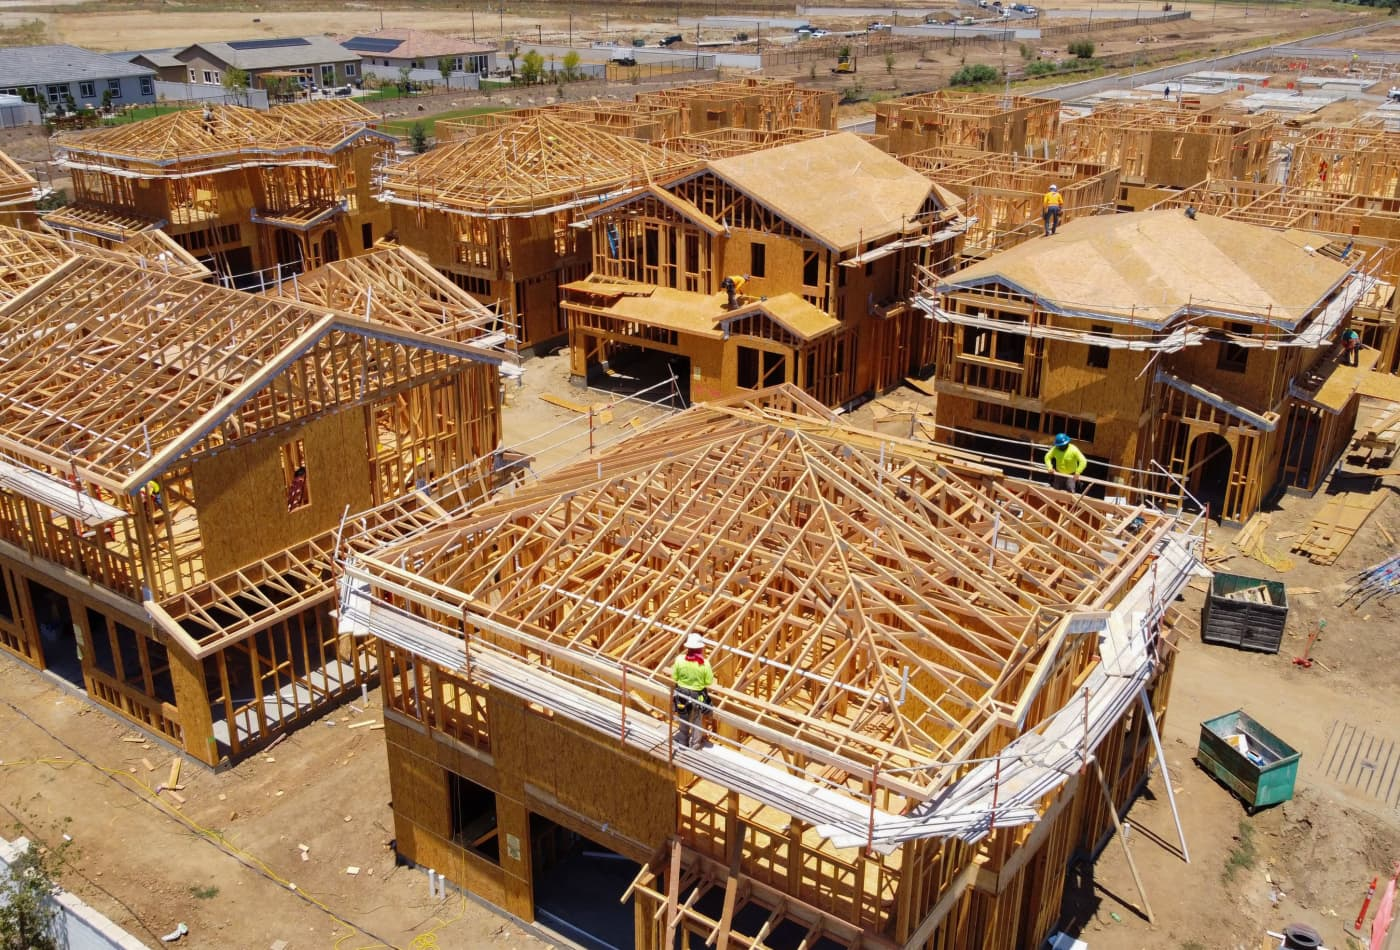 America is short more than 5 million homes, and builders can't make up the difference